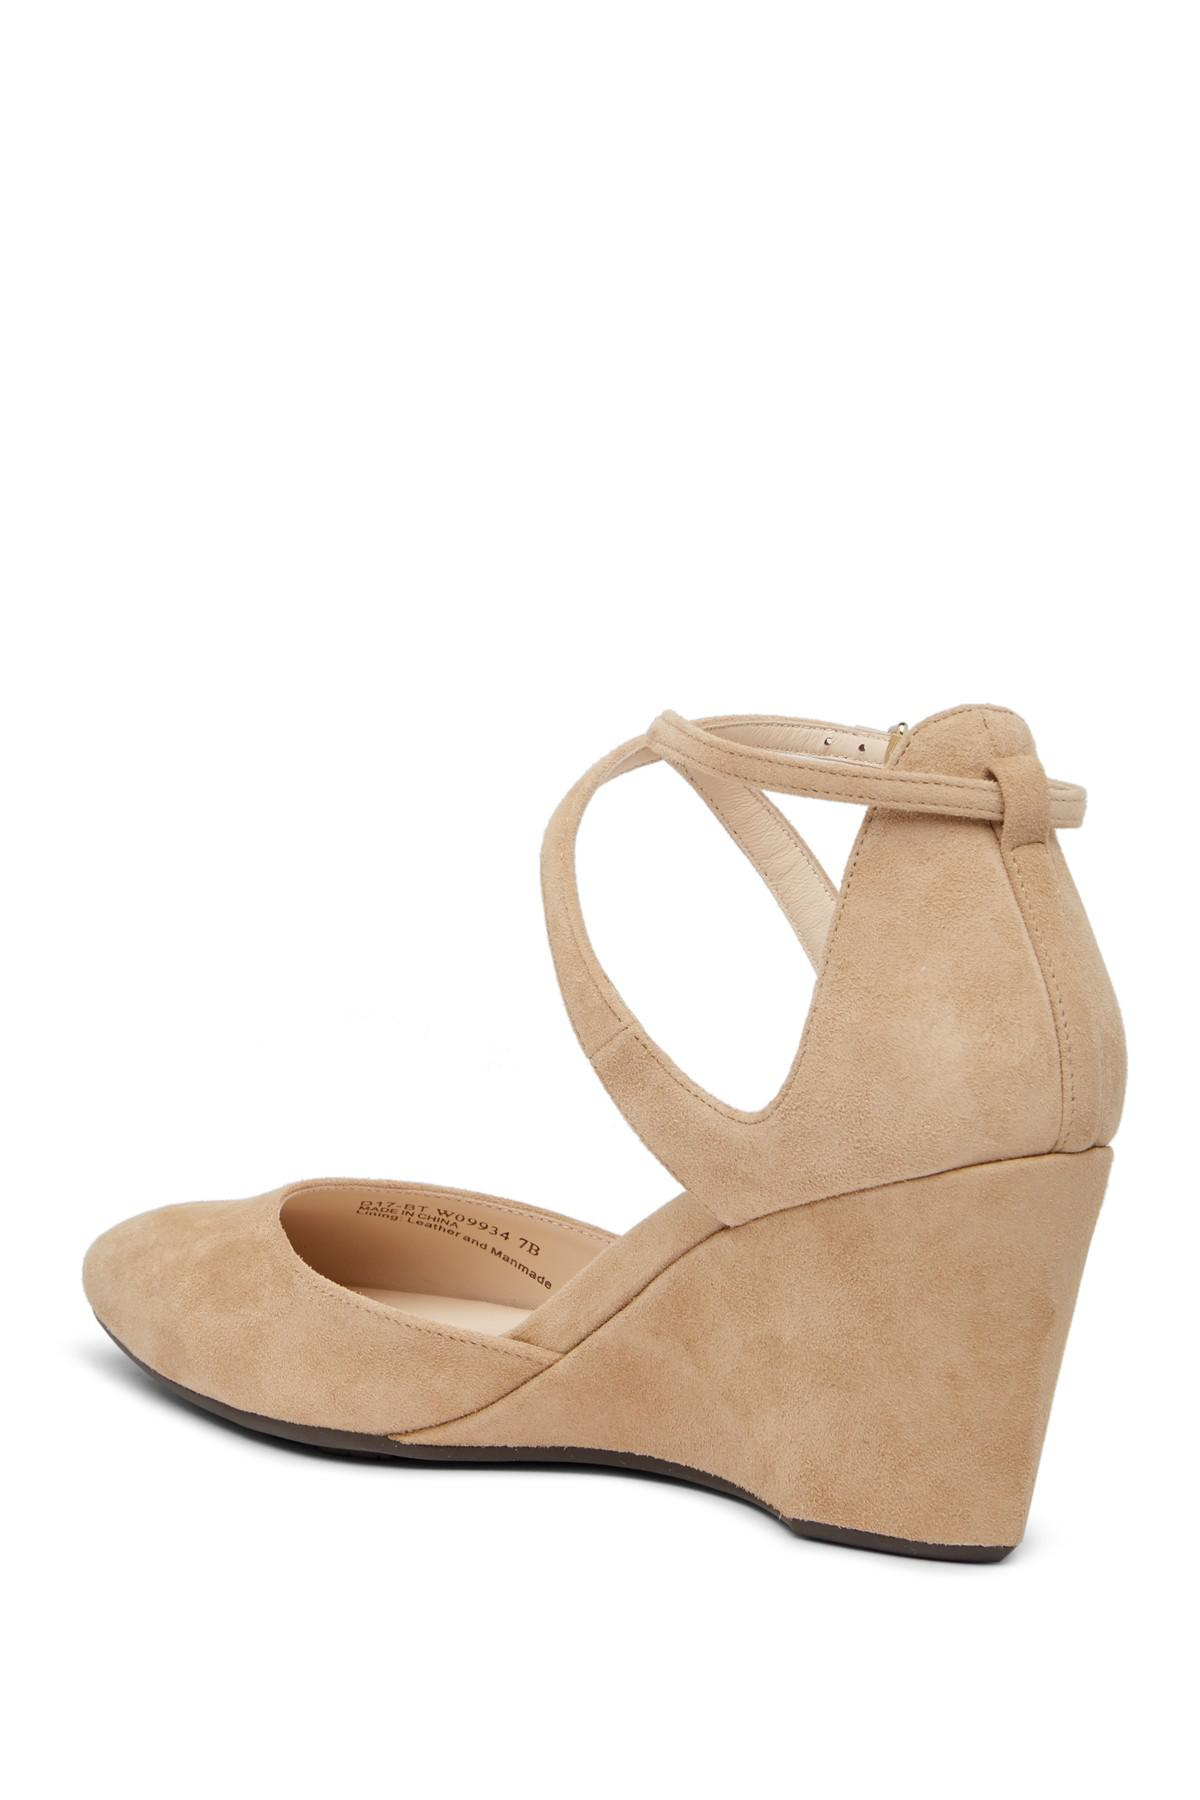 abcb060ca173 Cole Haan Lacey Ankle Strap Wedge Pump (women) in Natural - Lyst